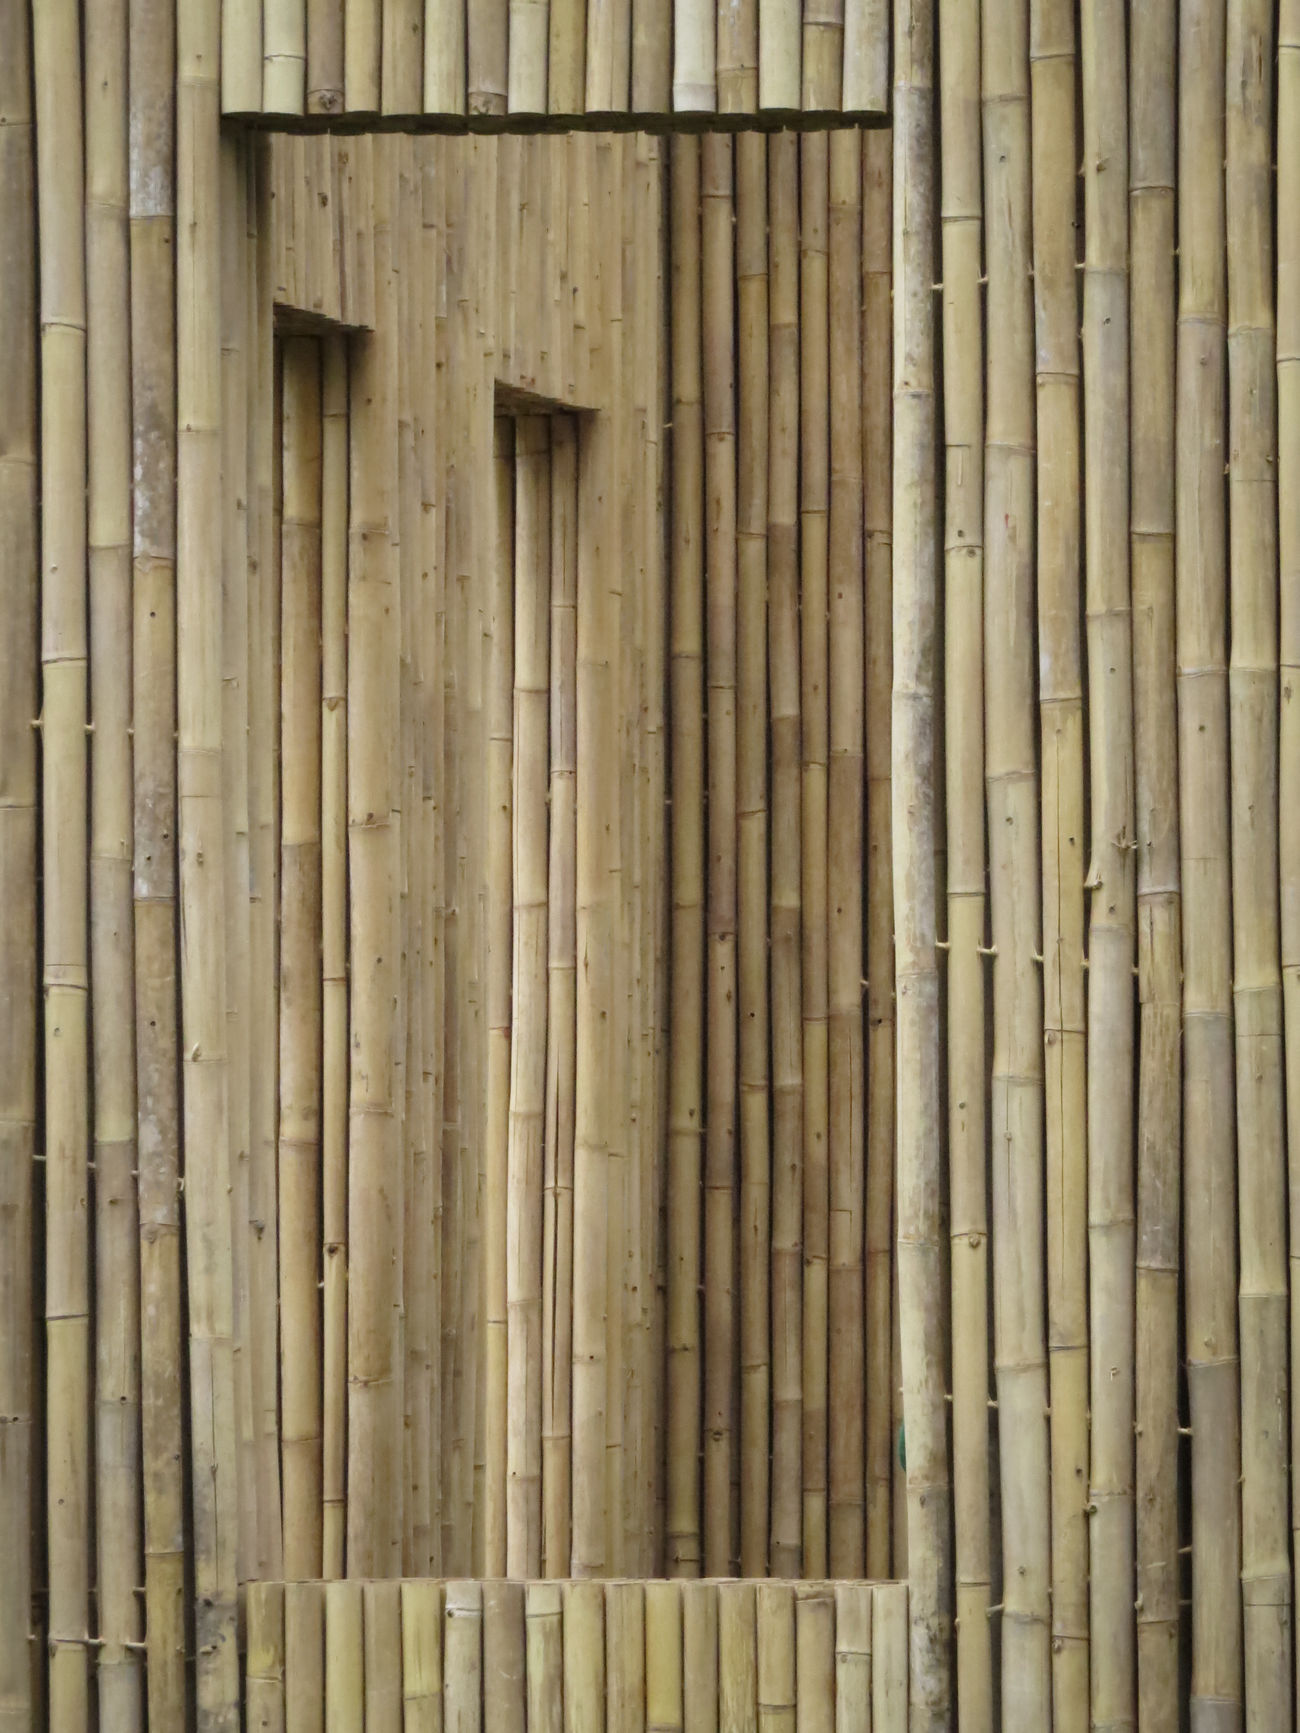 Abstract Bamboo Art Project Arnhem Building Building Structures Structures Structures & Lines Bamboo Art Netherlands Sonsbeekpark Transaction Summer2016 No People Parks And Recreation ArtWork Repetition Repeating Patterns Pattern Pattern, Texture, Shape And Form Patterns & Textures Relaxing My Point Of View Loving Photography